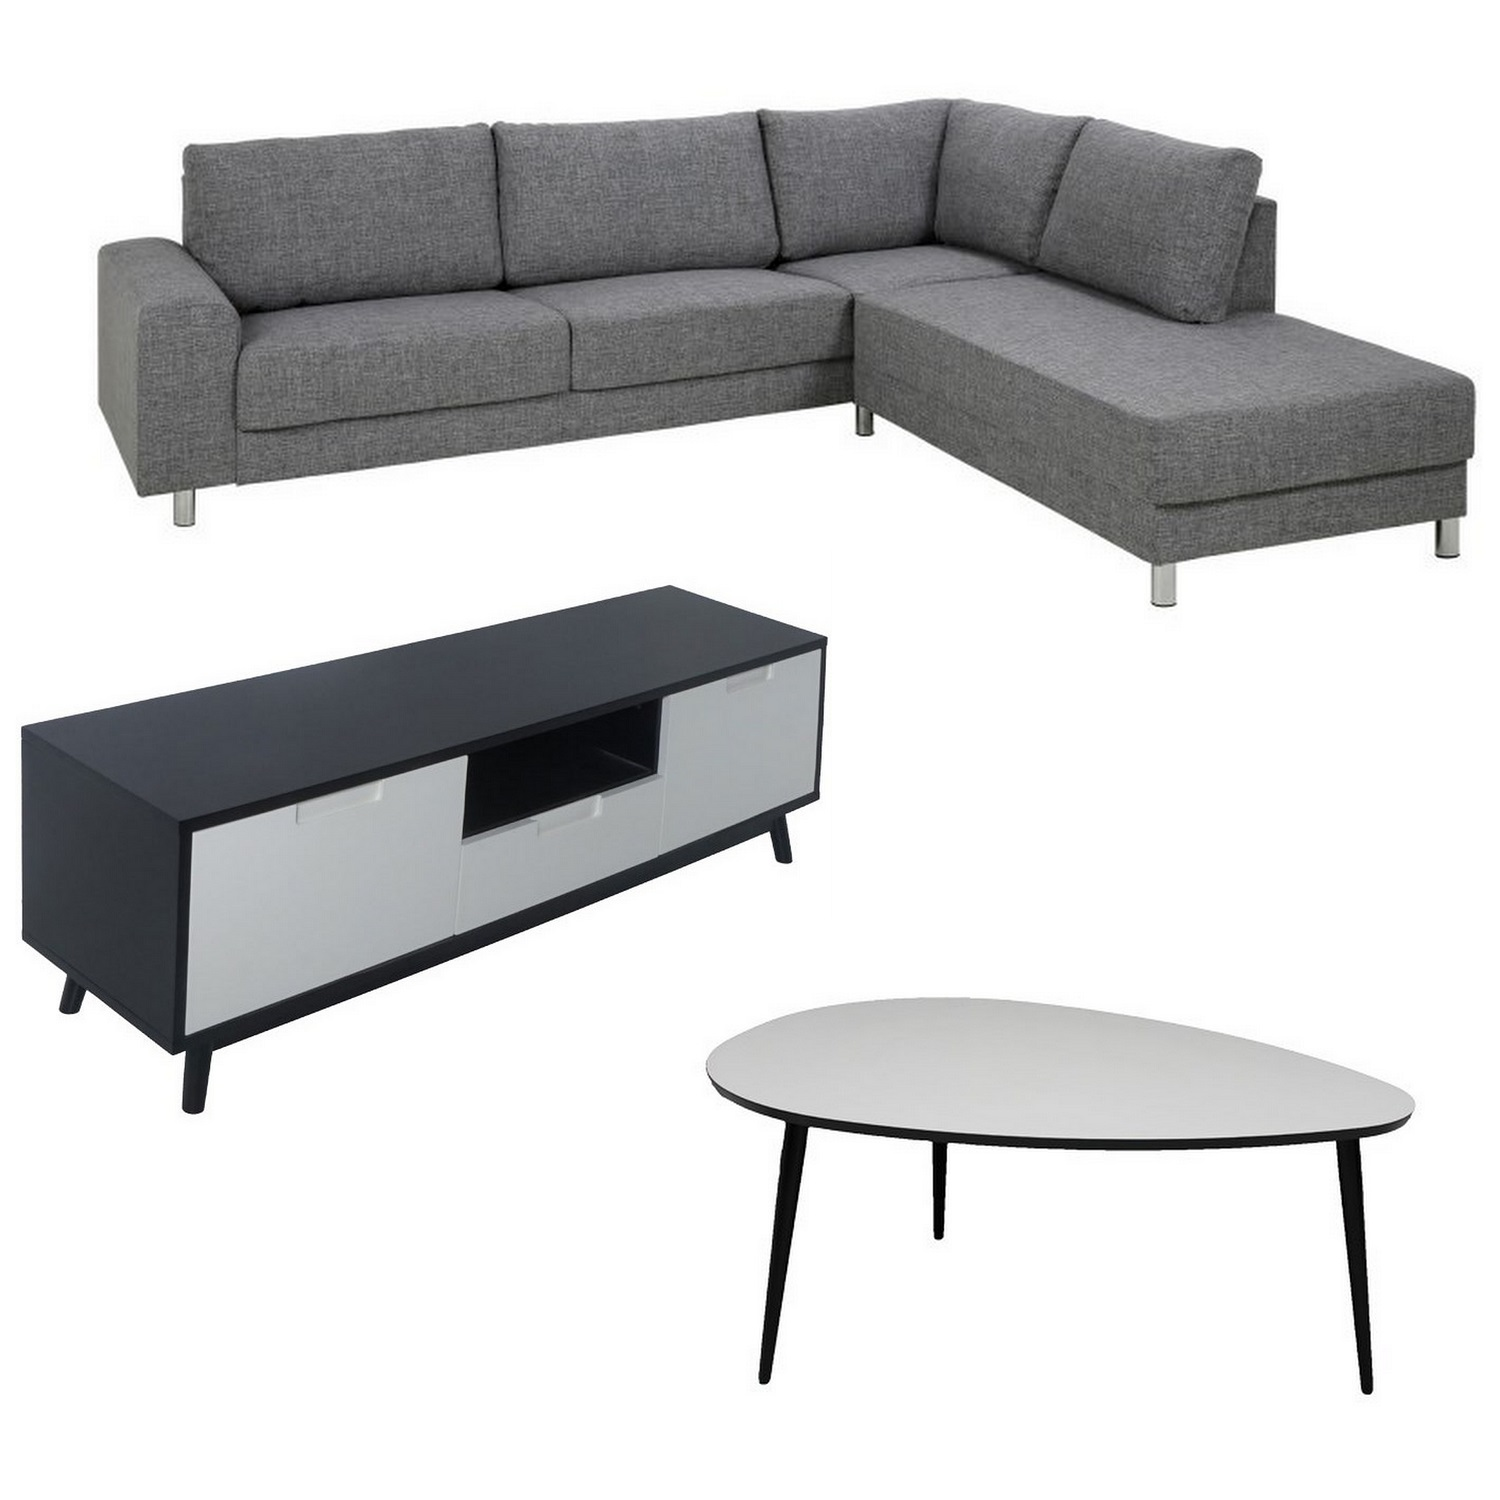 Studenter option 4 - chaiselong sofa + TV-bord + sofabord